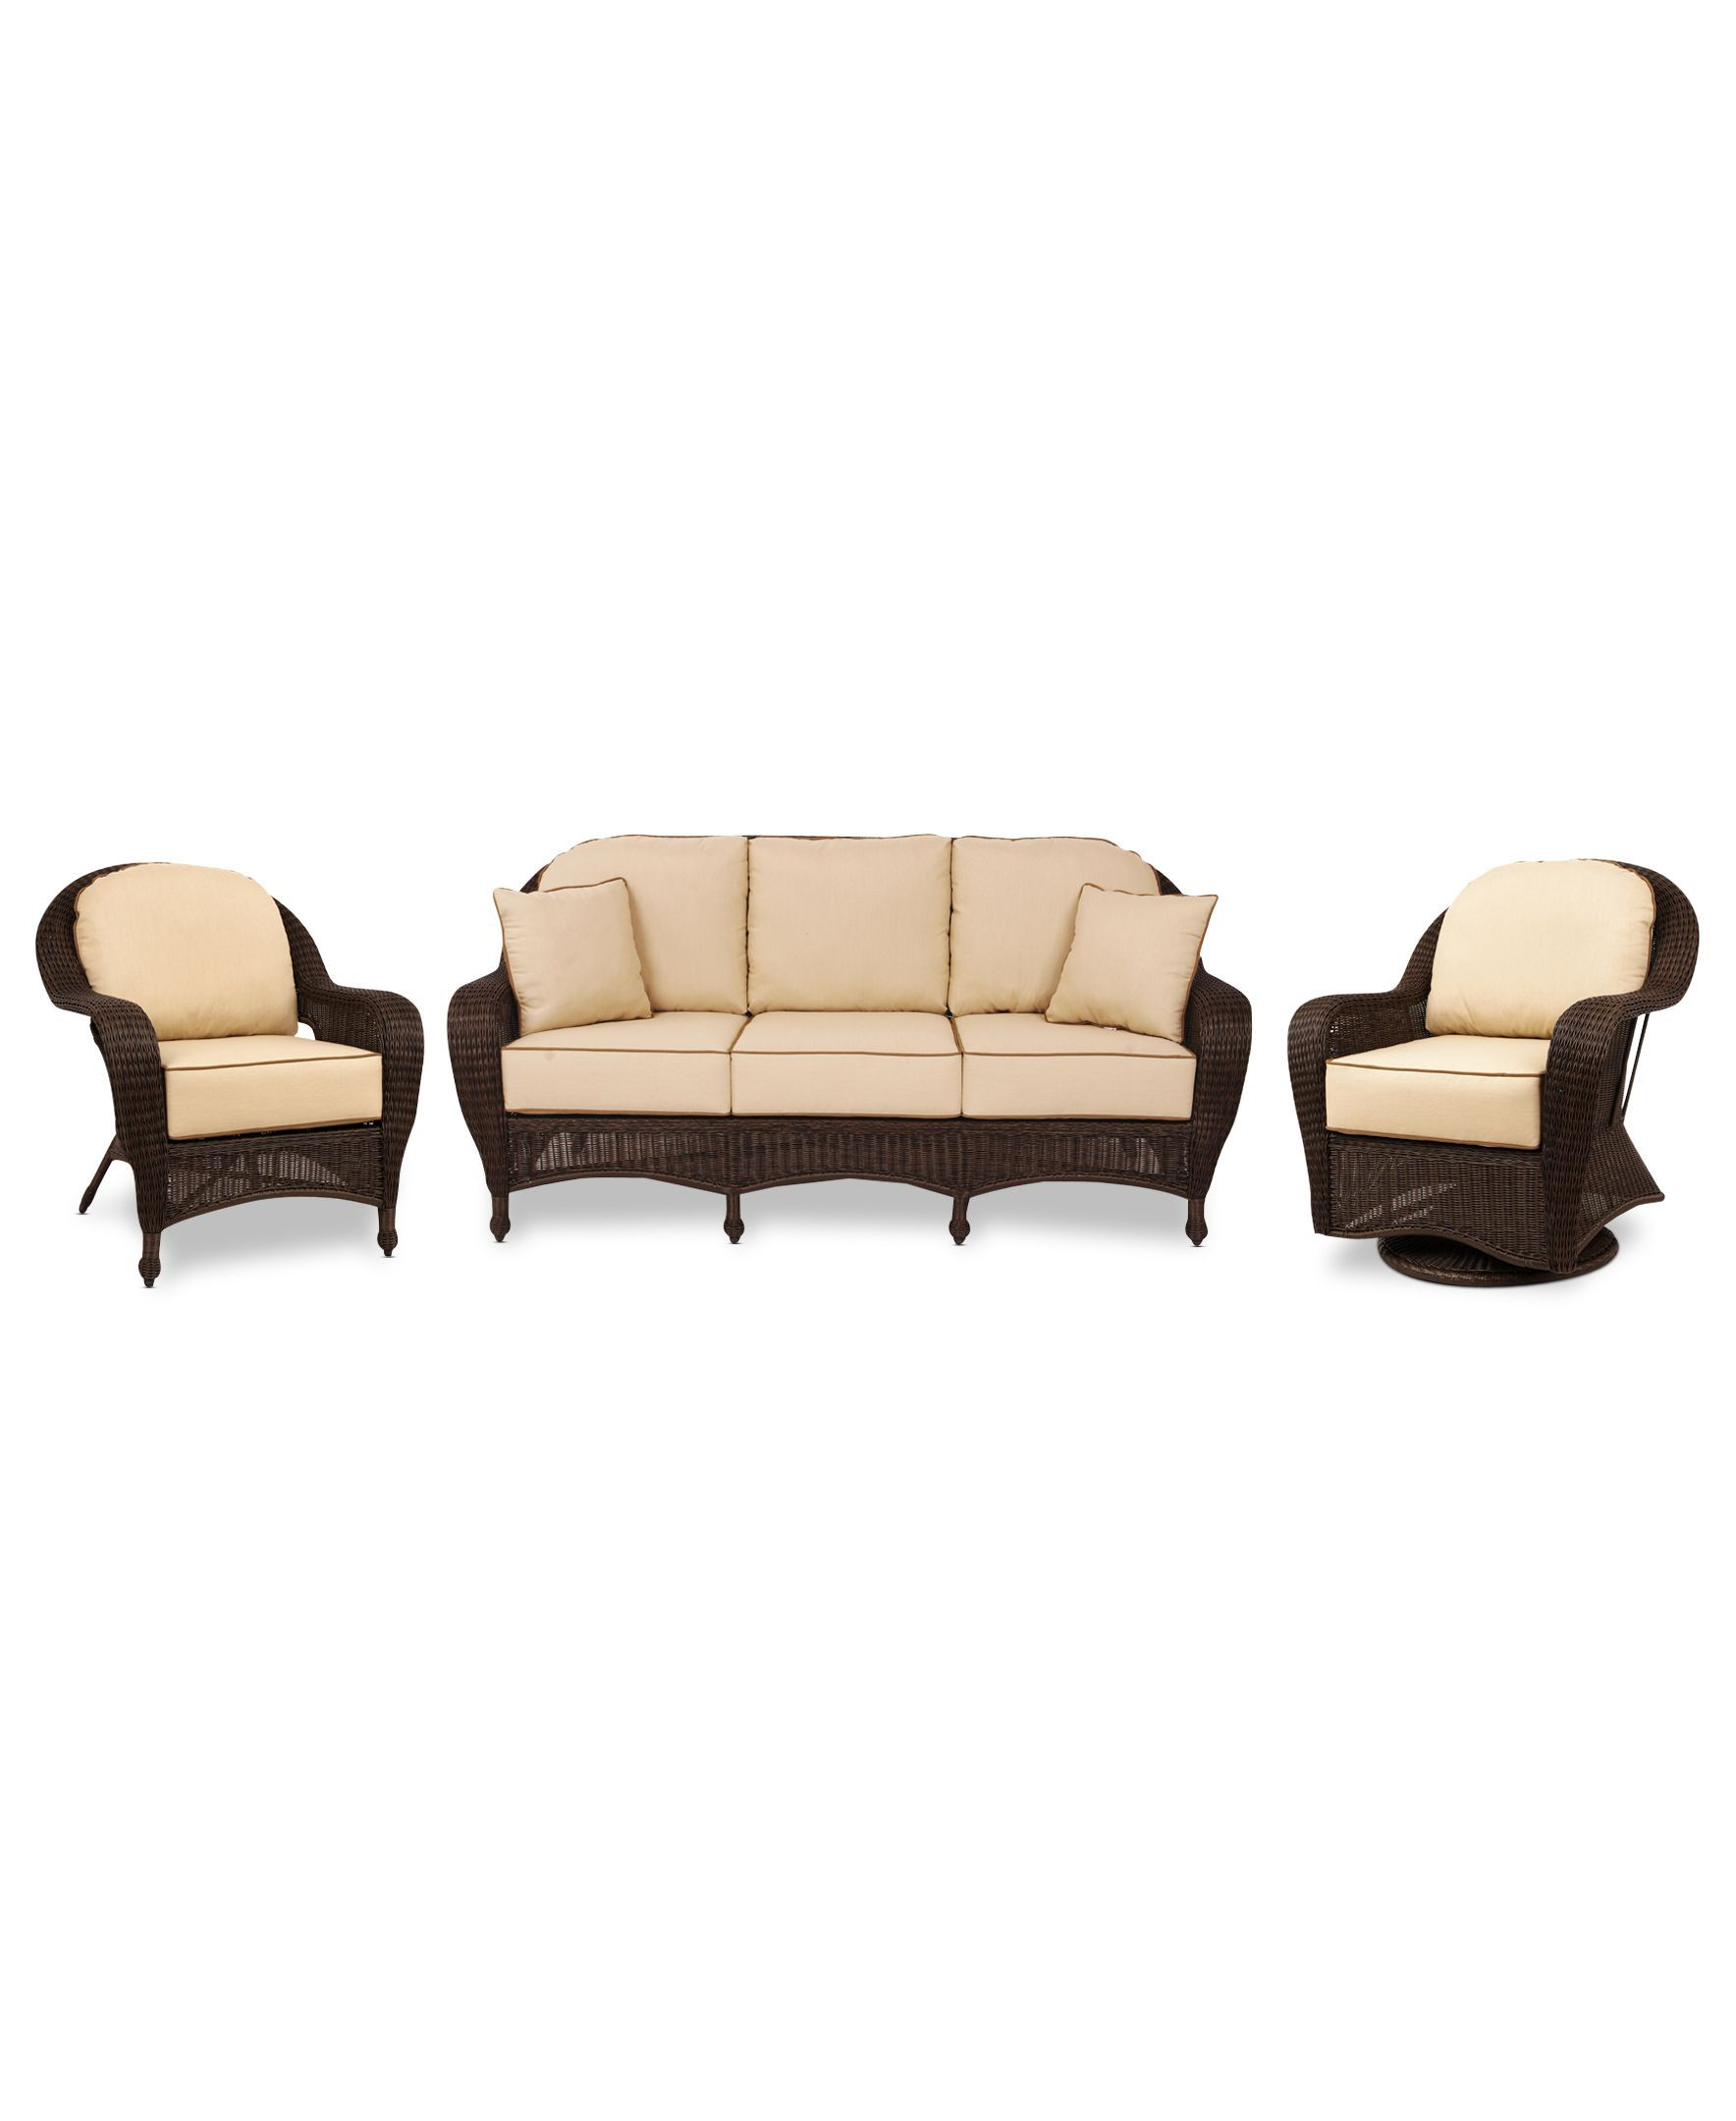 Monterey Outdoor Wicker 3-Pc. Seating Set with Sunbrella® Cushions ...